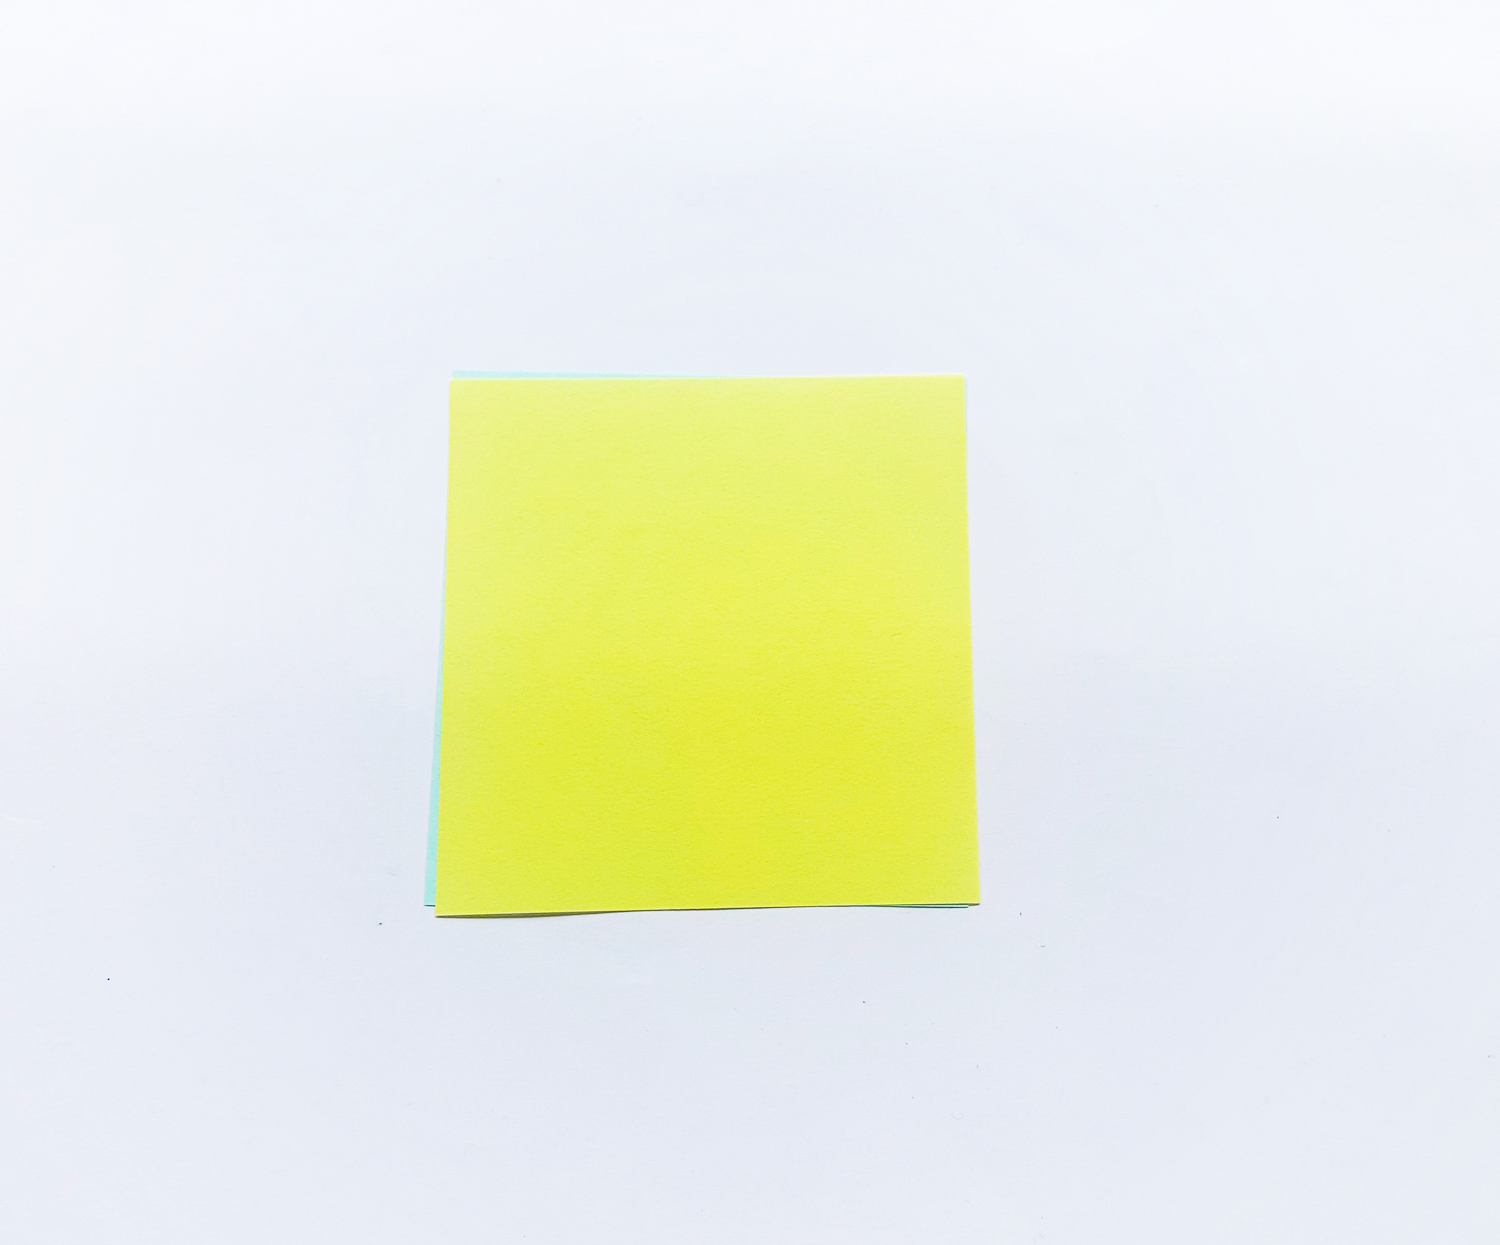 square yellow paper